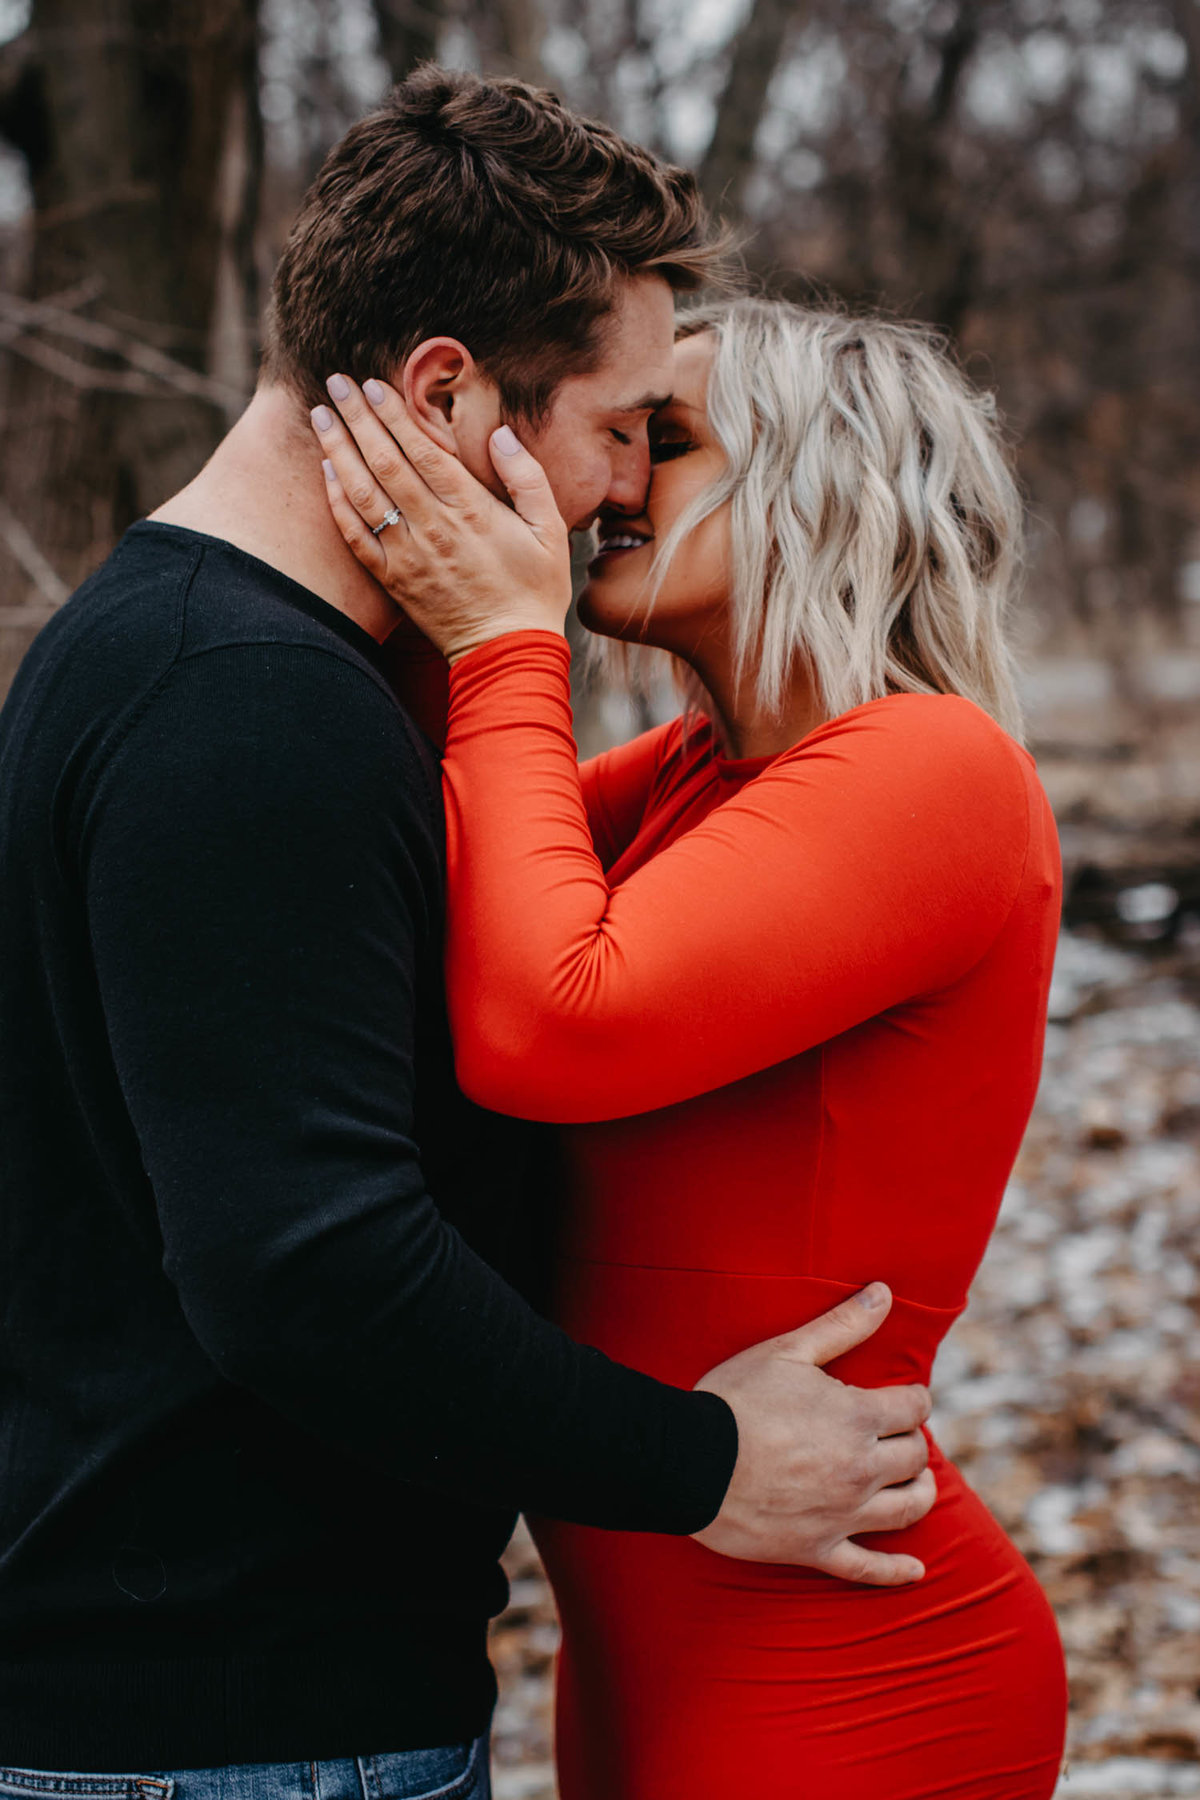 fullersburg-woods-winter-shoot-hinsdale-il-couple-engagement-chicago-9